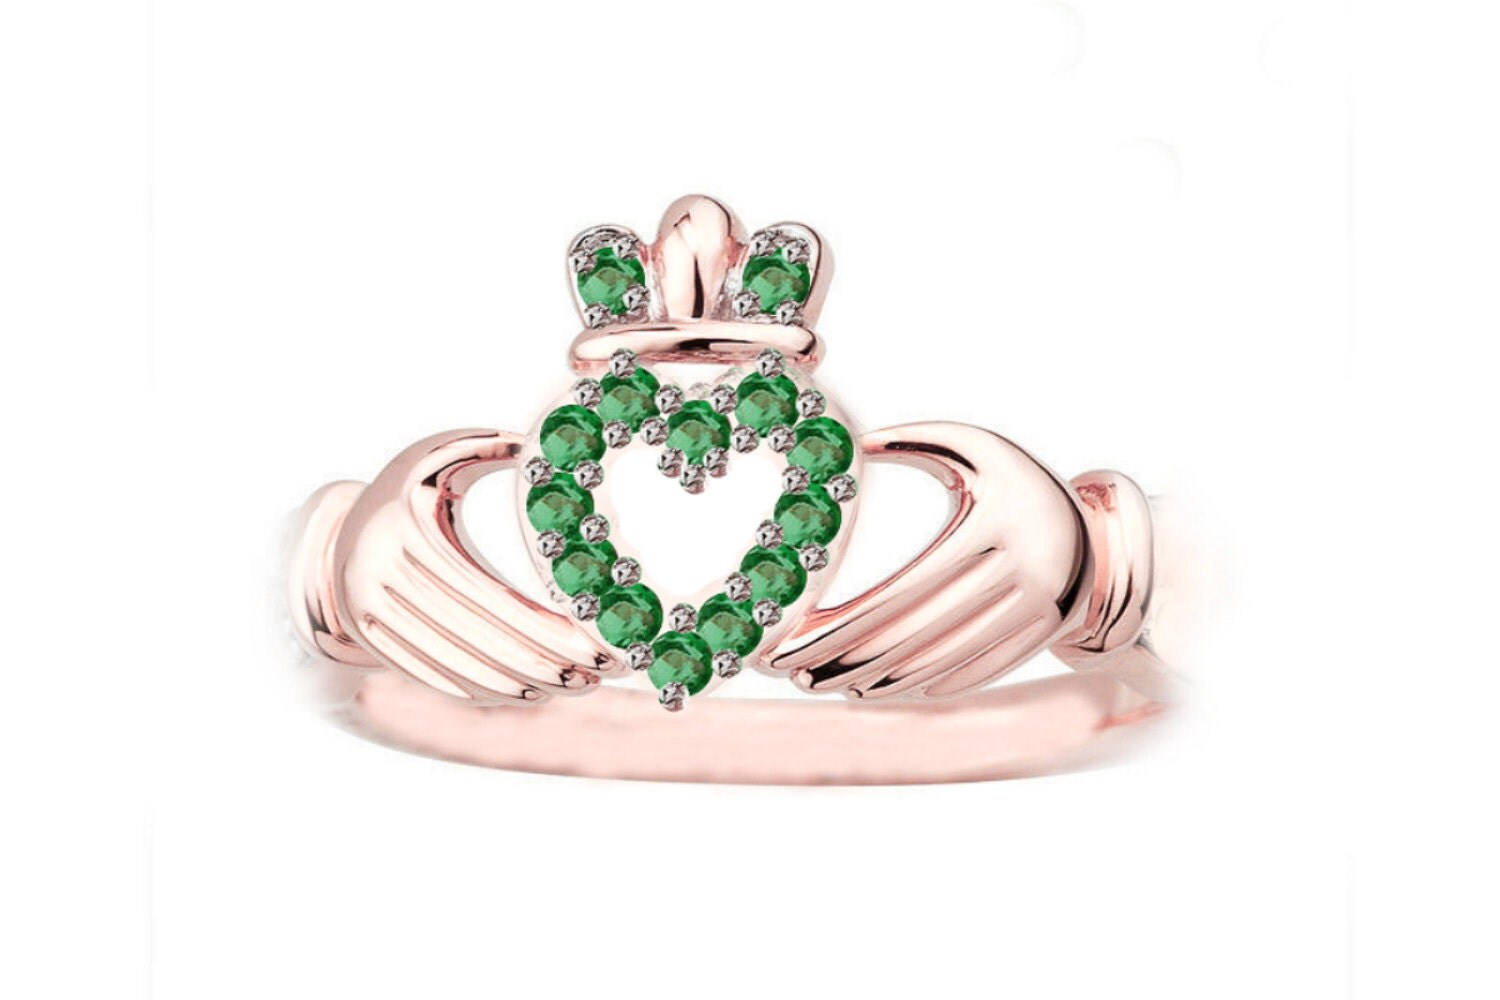 Rose Gold Claddagh Ring, Claddagh Ring, Claddagh Engagement Ring, Green  Stone Claddagh Ring